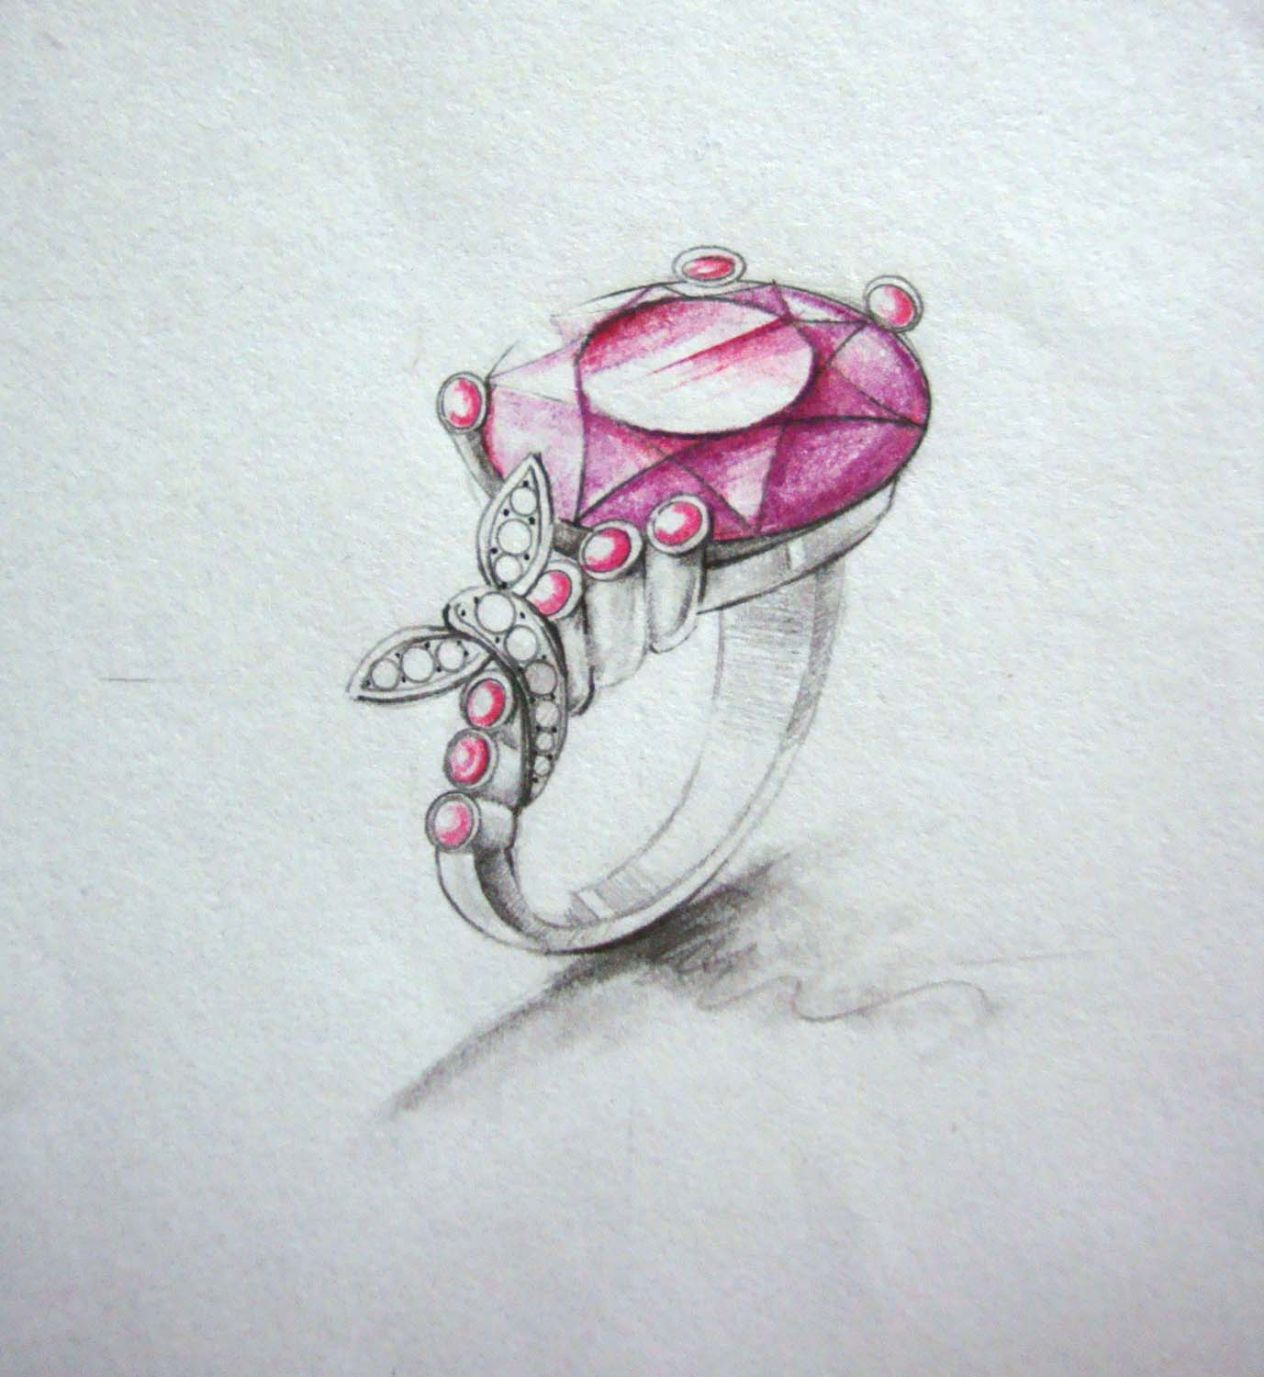 Jewelry Diamond Ring - See more amazing jewelry at RadiantRings.net!